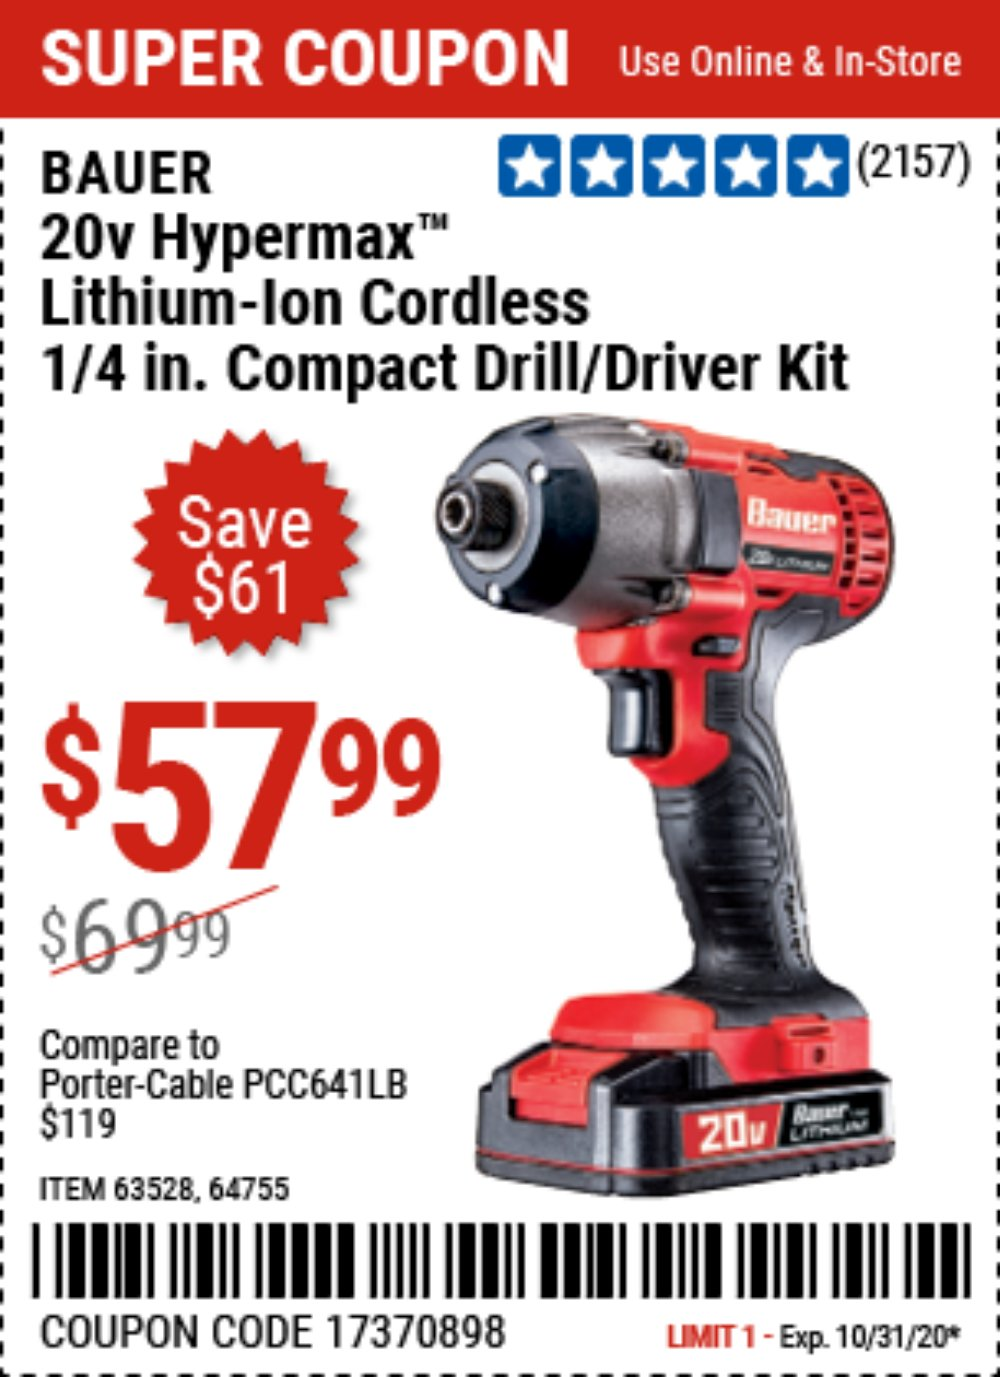 Harbor Freight Coupon, HF Coupons - 20 Volt Lithium Cordless 1/4